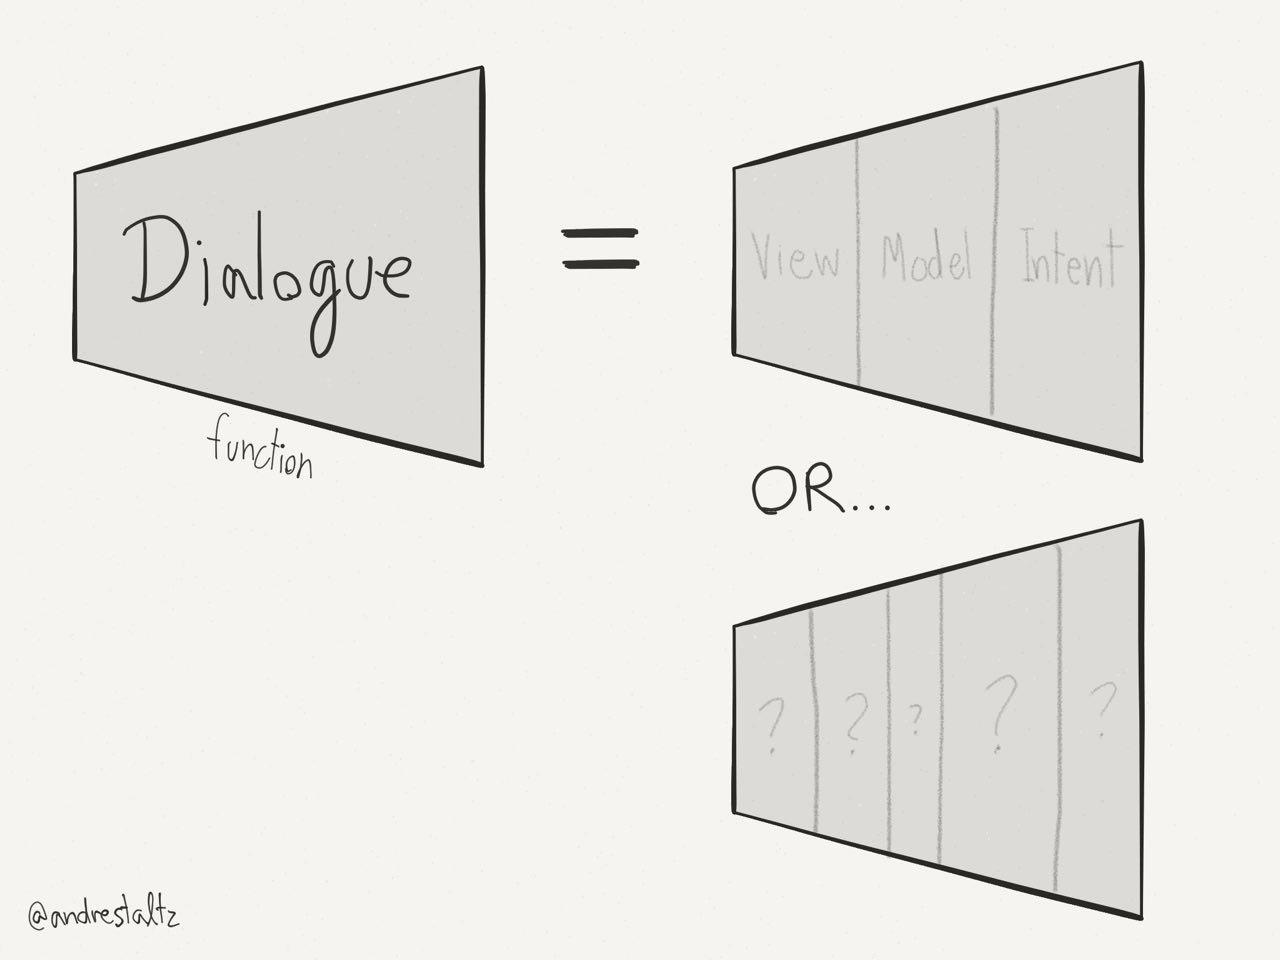 image-nested-dialogues-1